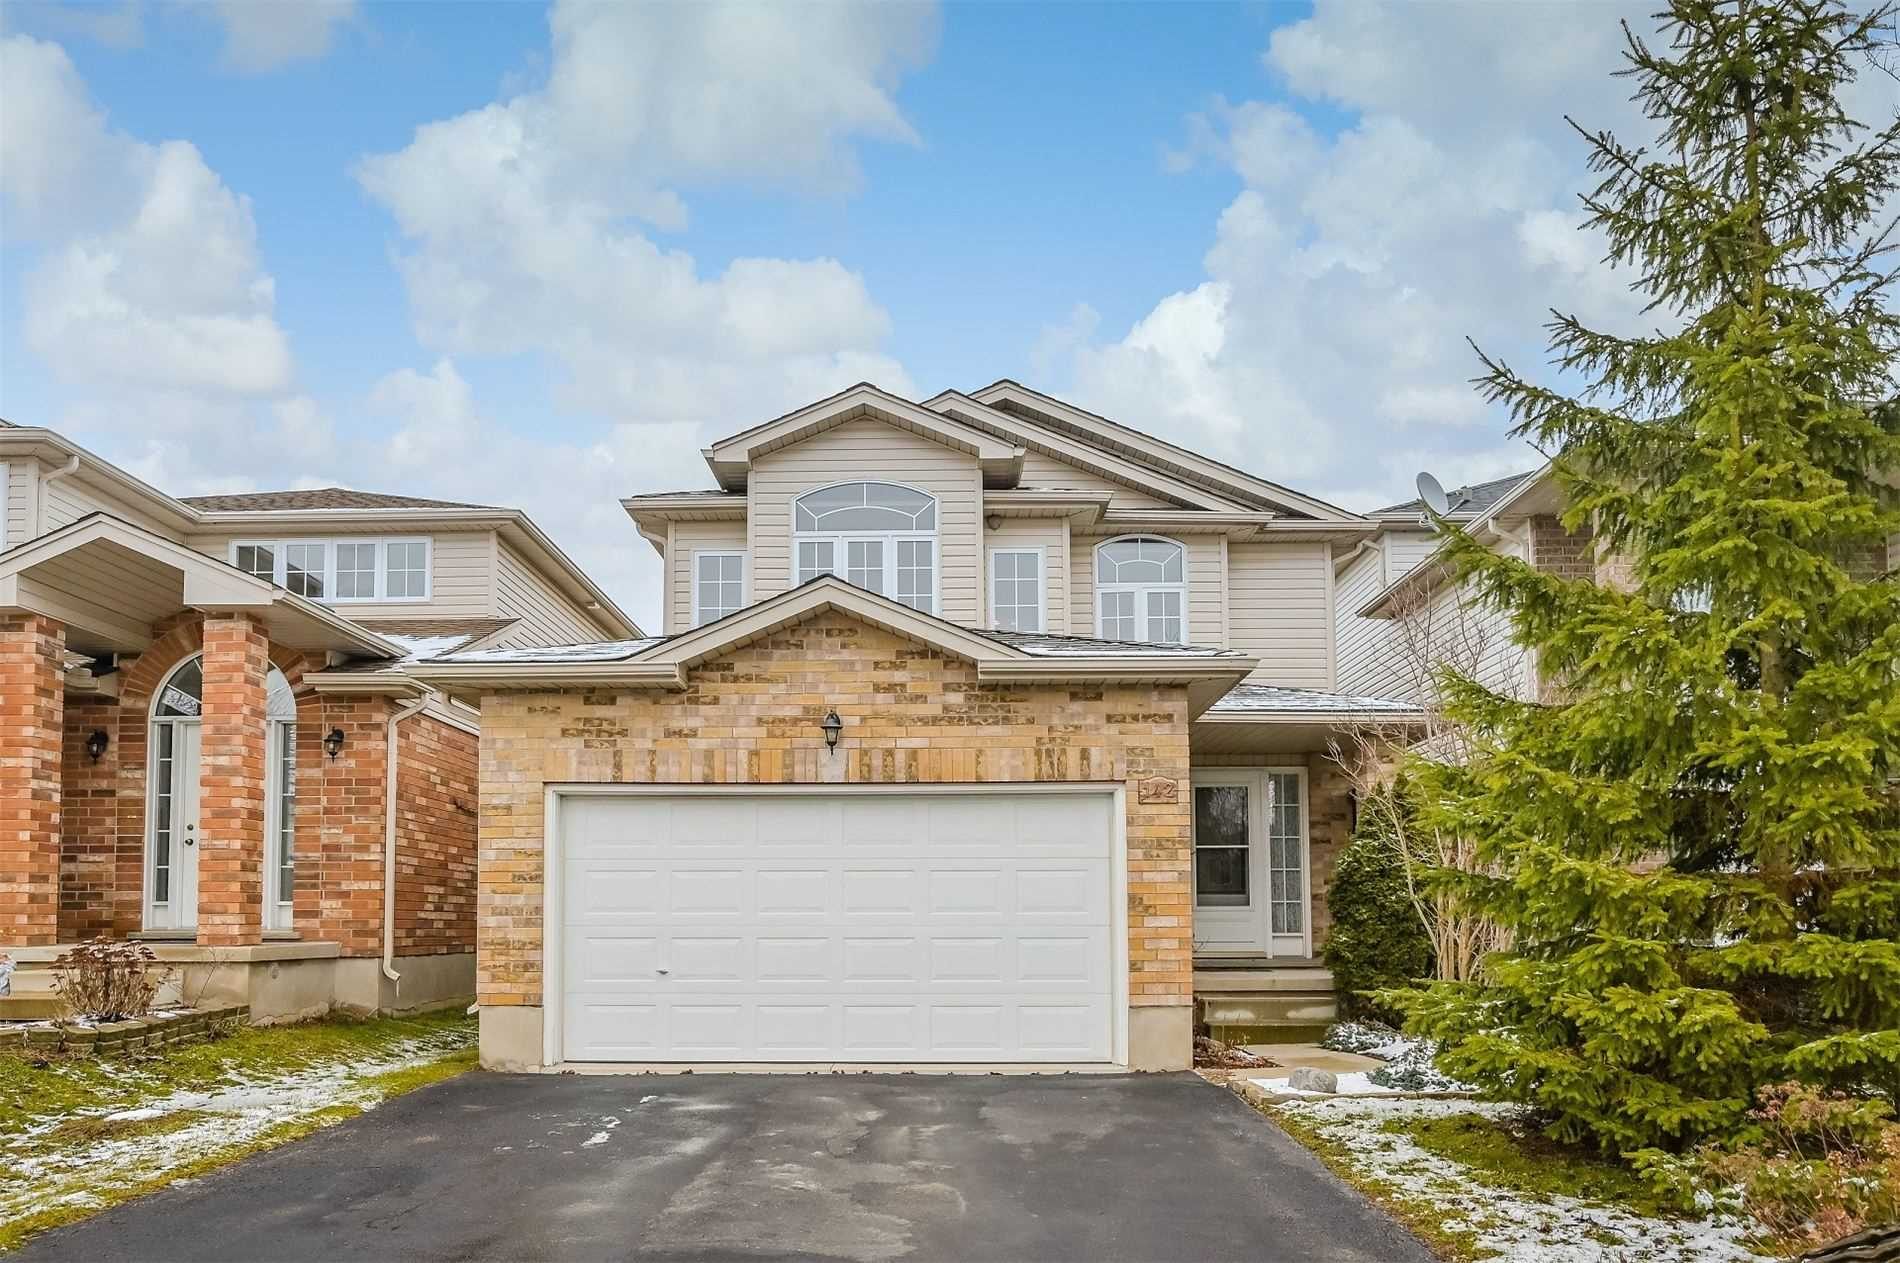 pictures of house for sale MLS: X4668220 located at 142 Swift Cres, Guelph N1E7J2